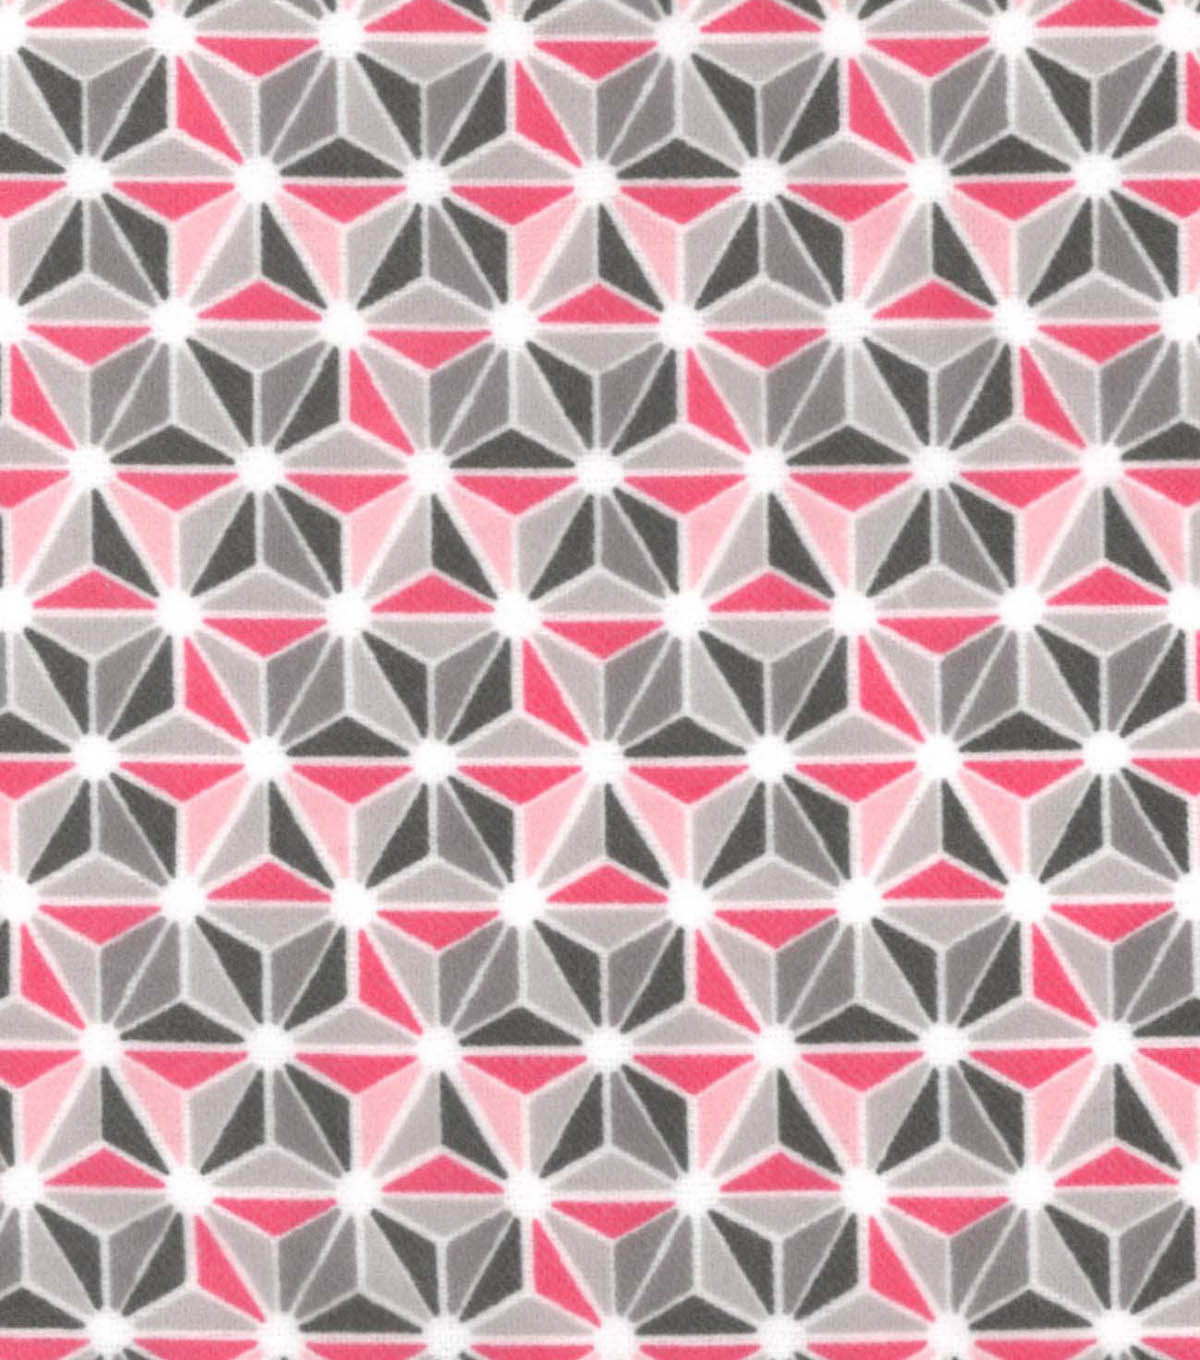 Snuggle Flannel Fabric 42\u0022-Pink Geometric